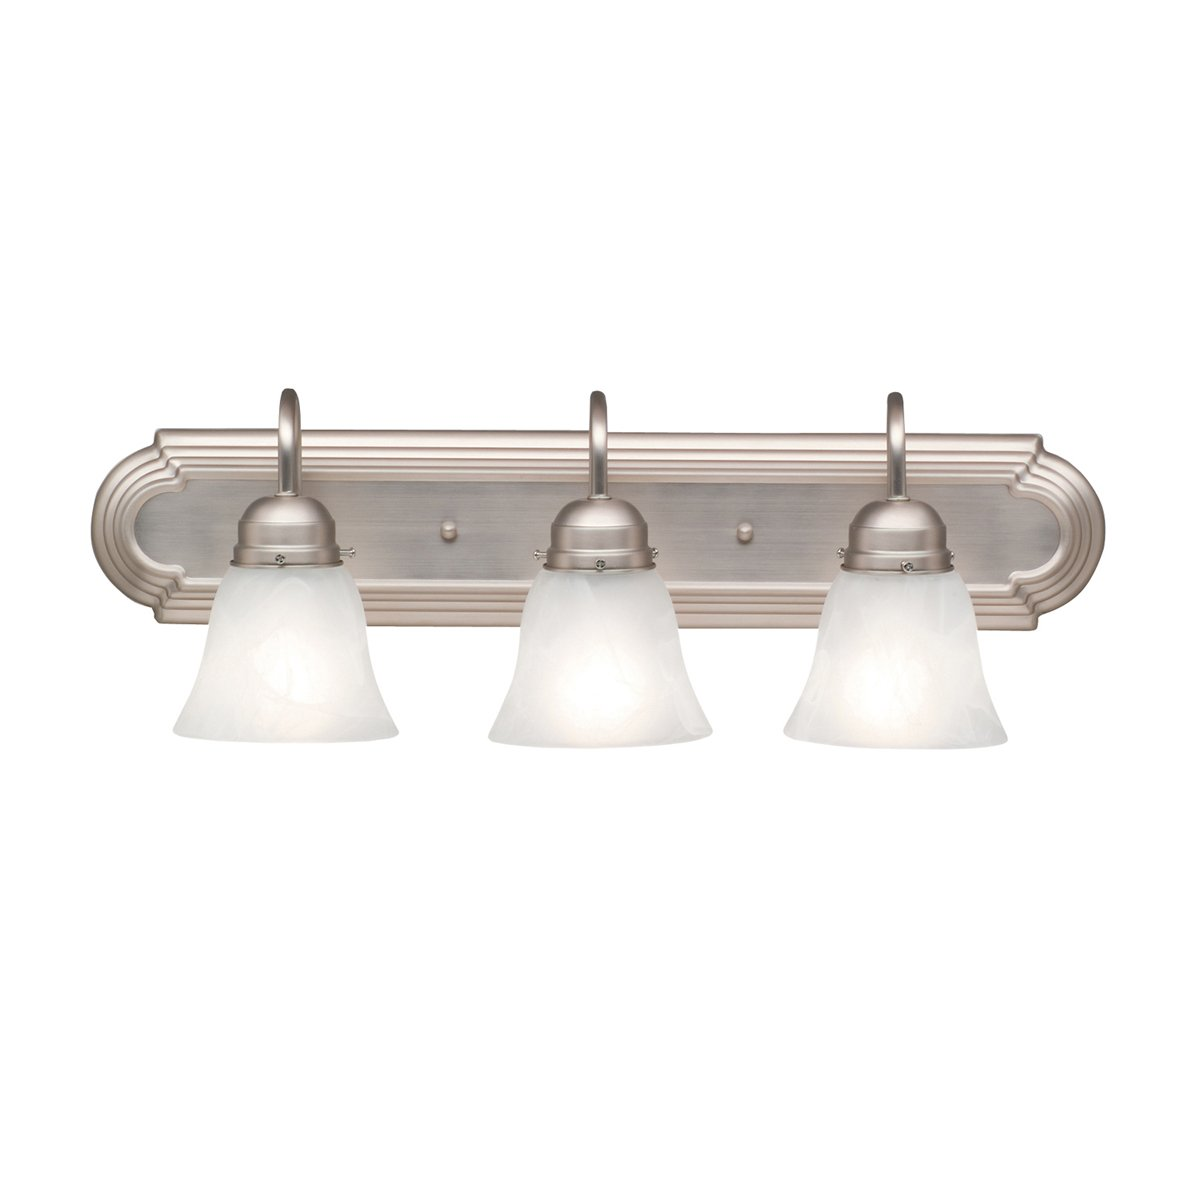 Kichler 5337NI Bath 3 Light, Brushed Nickel   Vanity Lighting Fixtures    Amazon.com